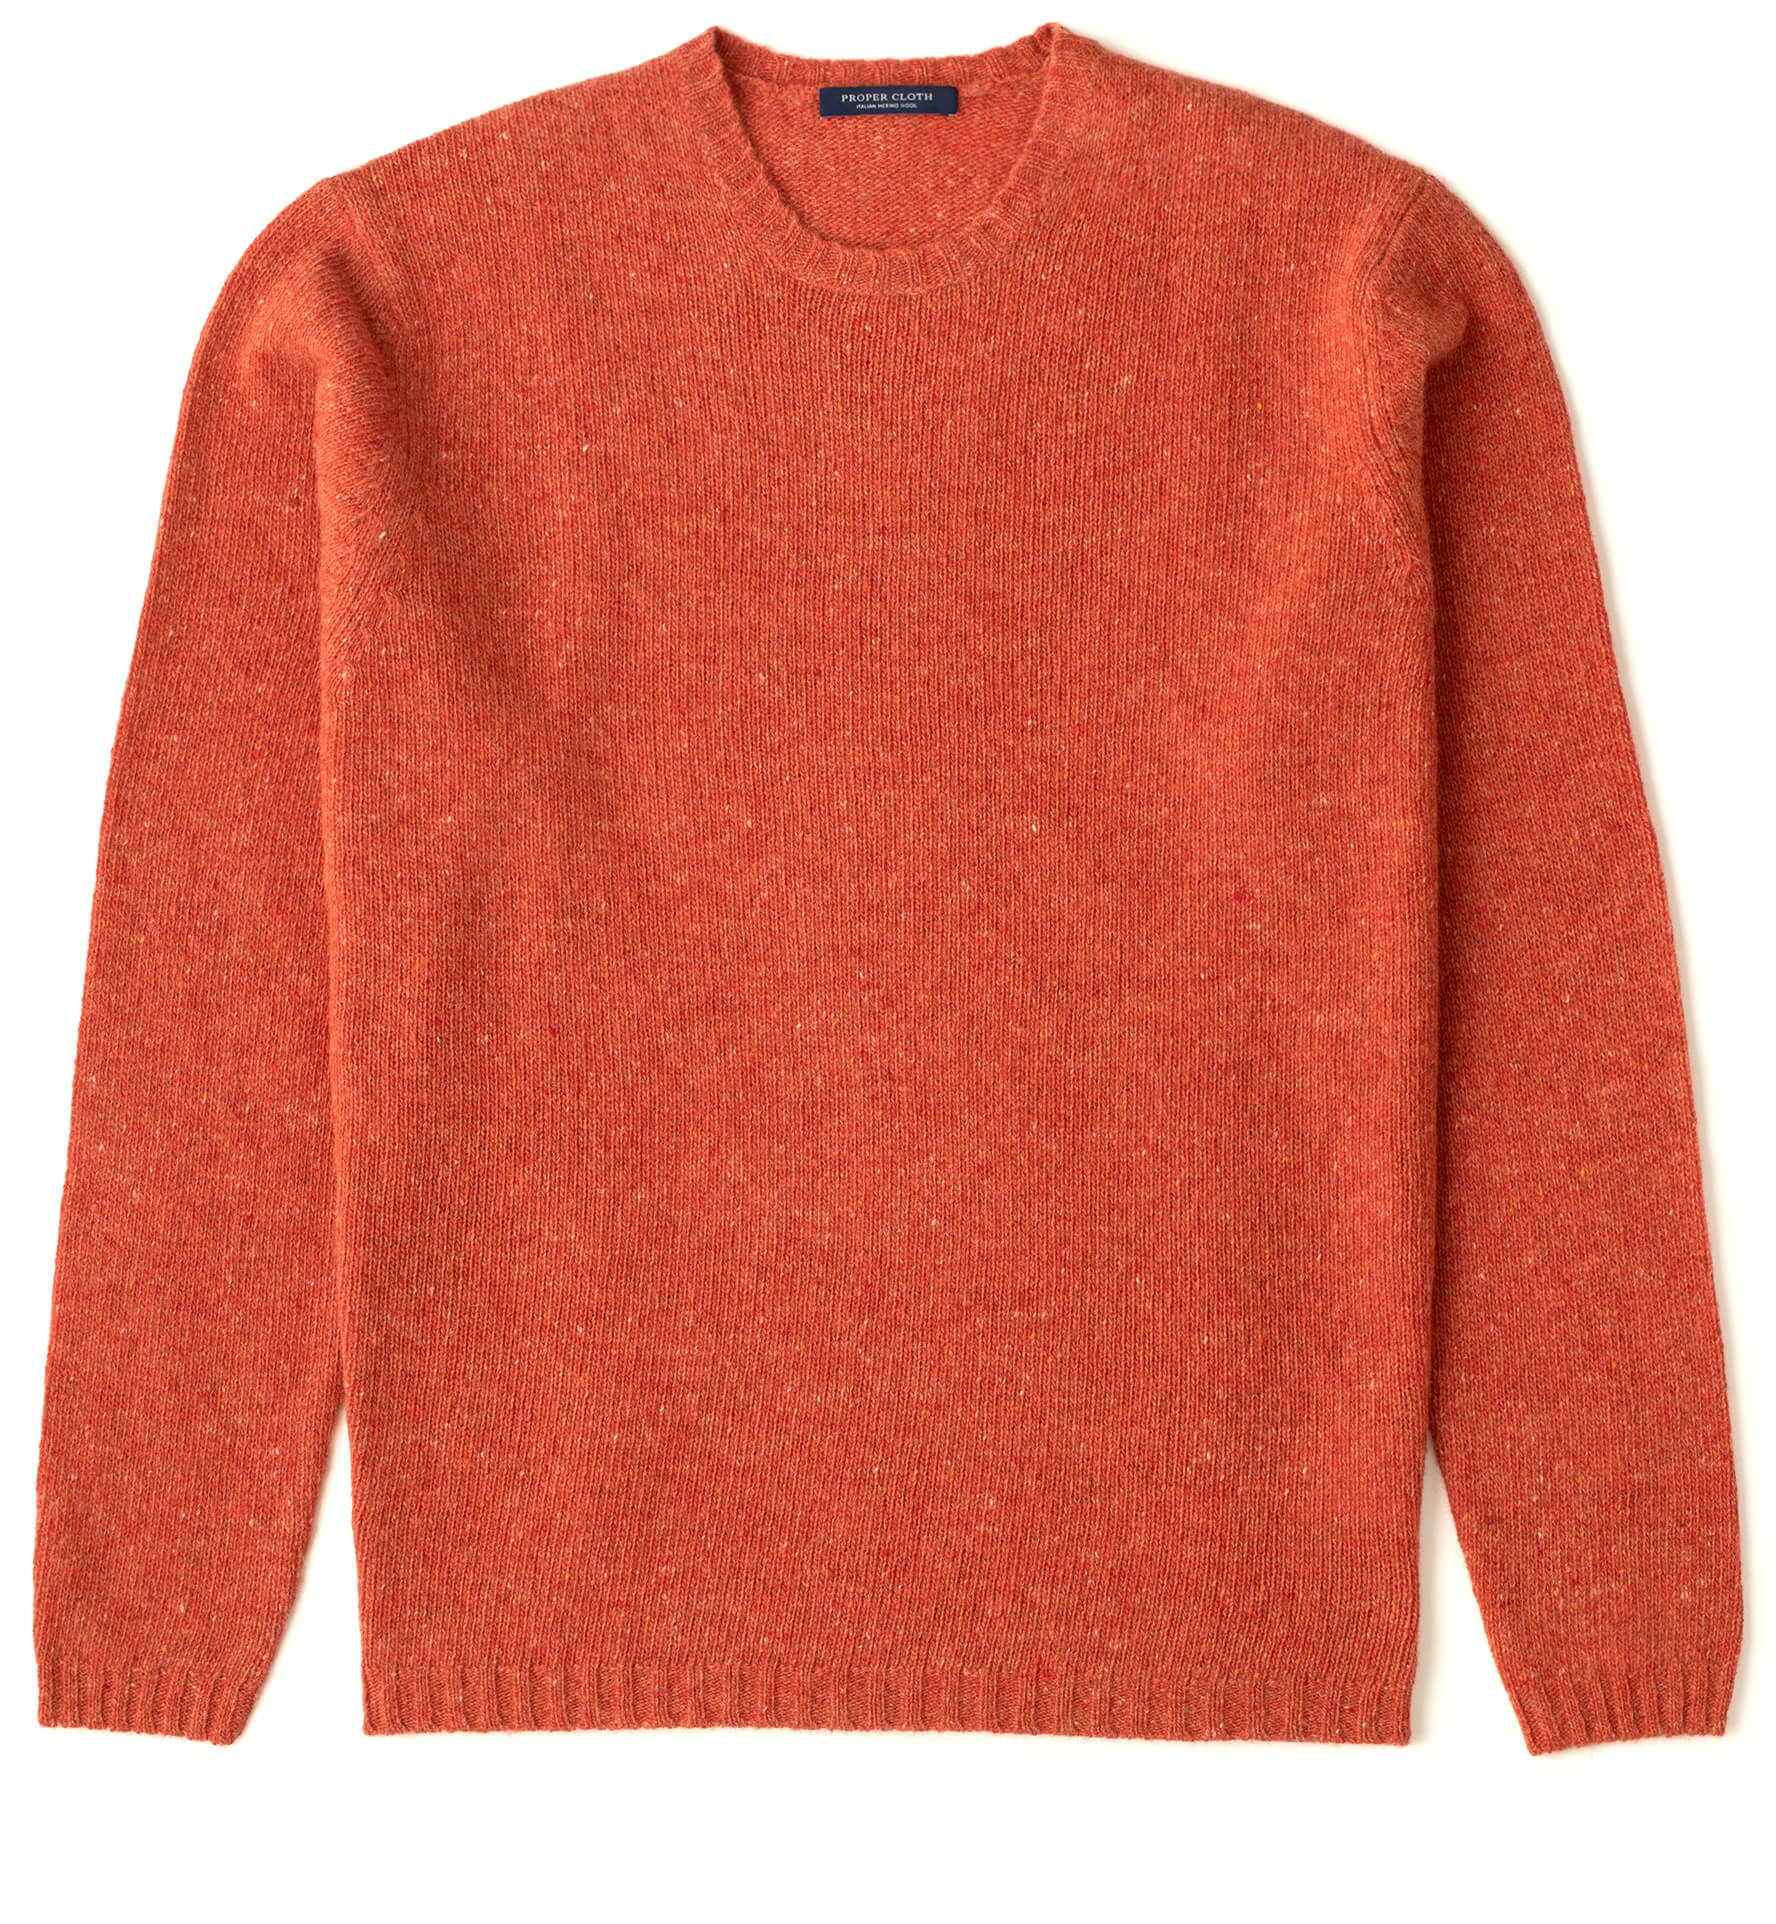 Zoom Image of Pumpkin Donegal Lambswool Sweater